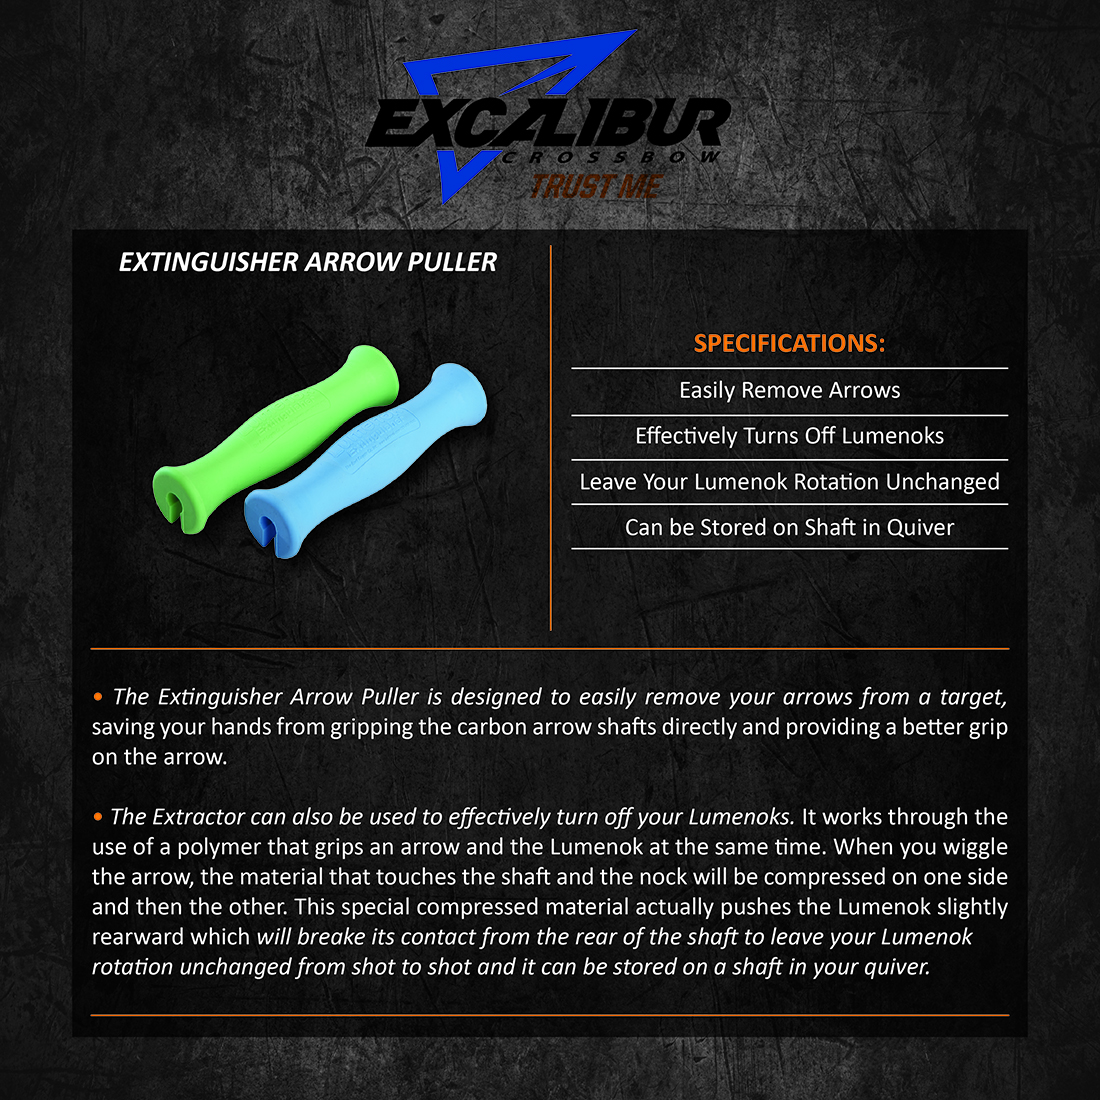 Excalibur_Extinguisher_Arrow_Puller_Product_Description